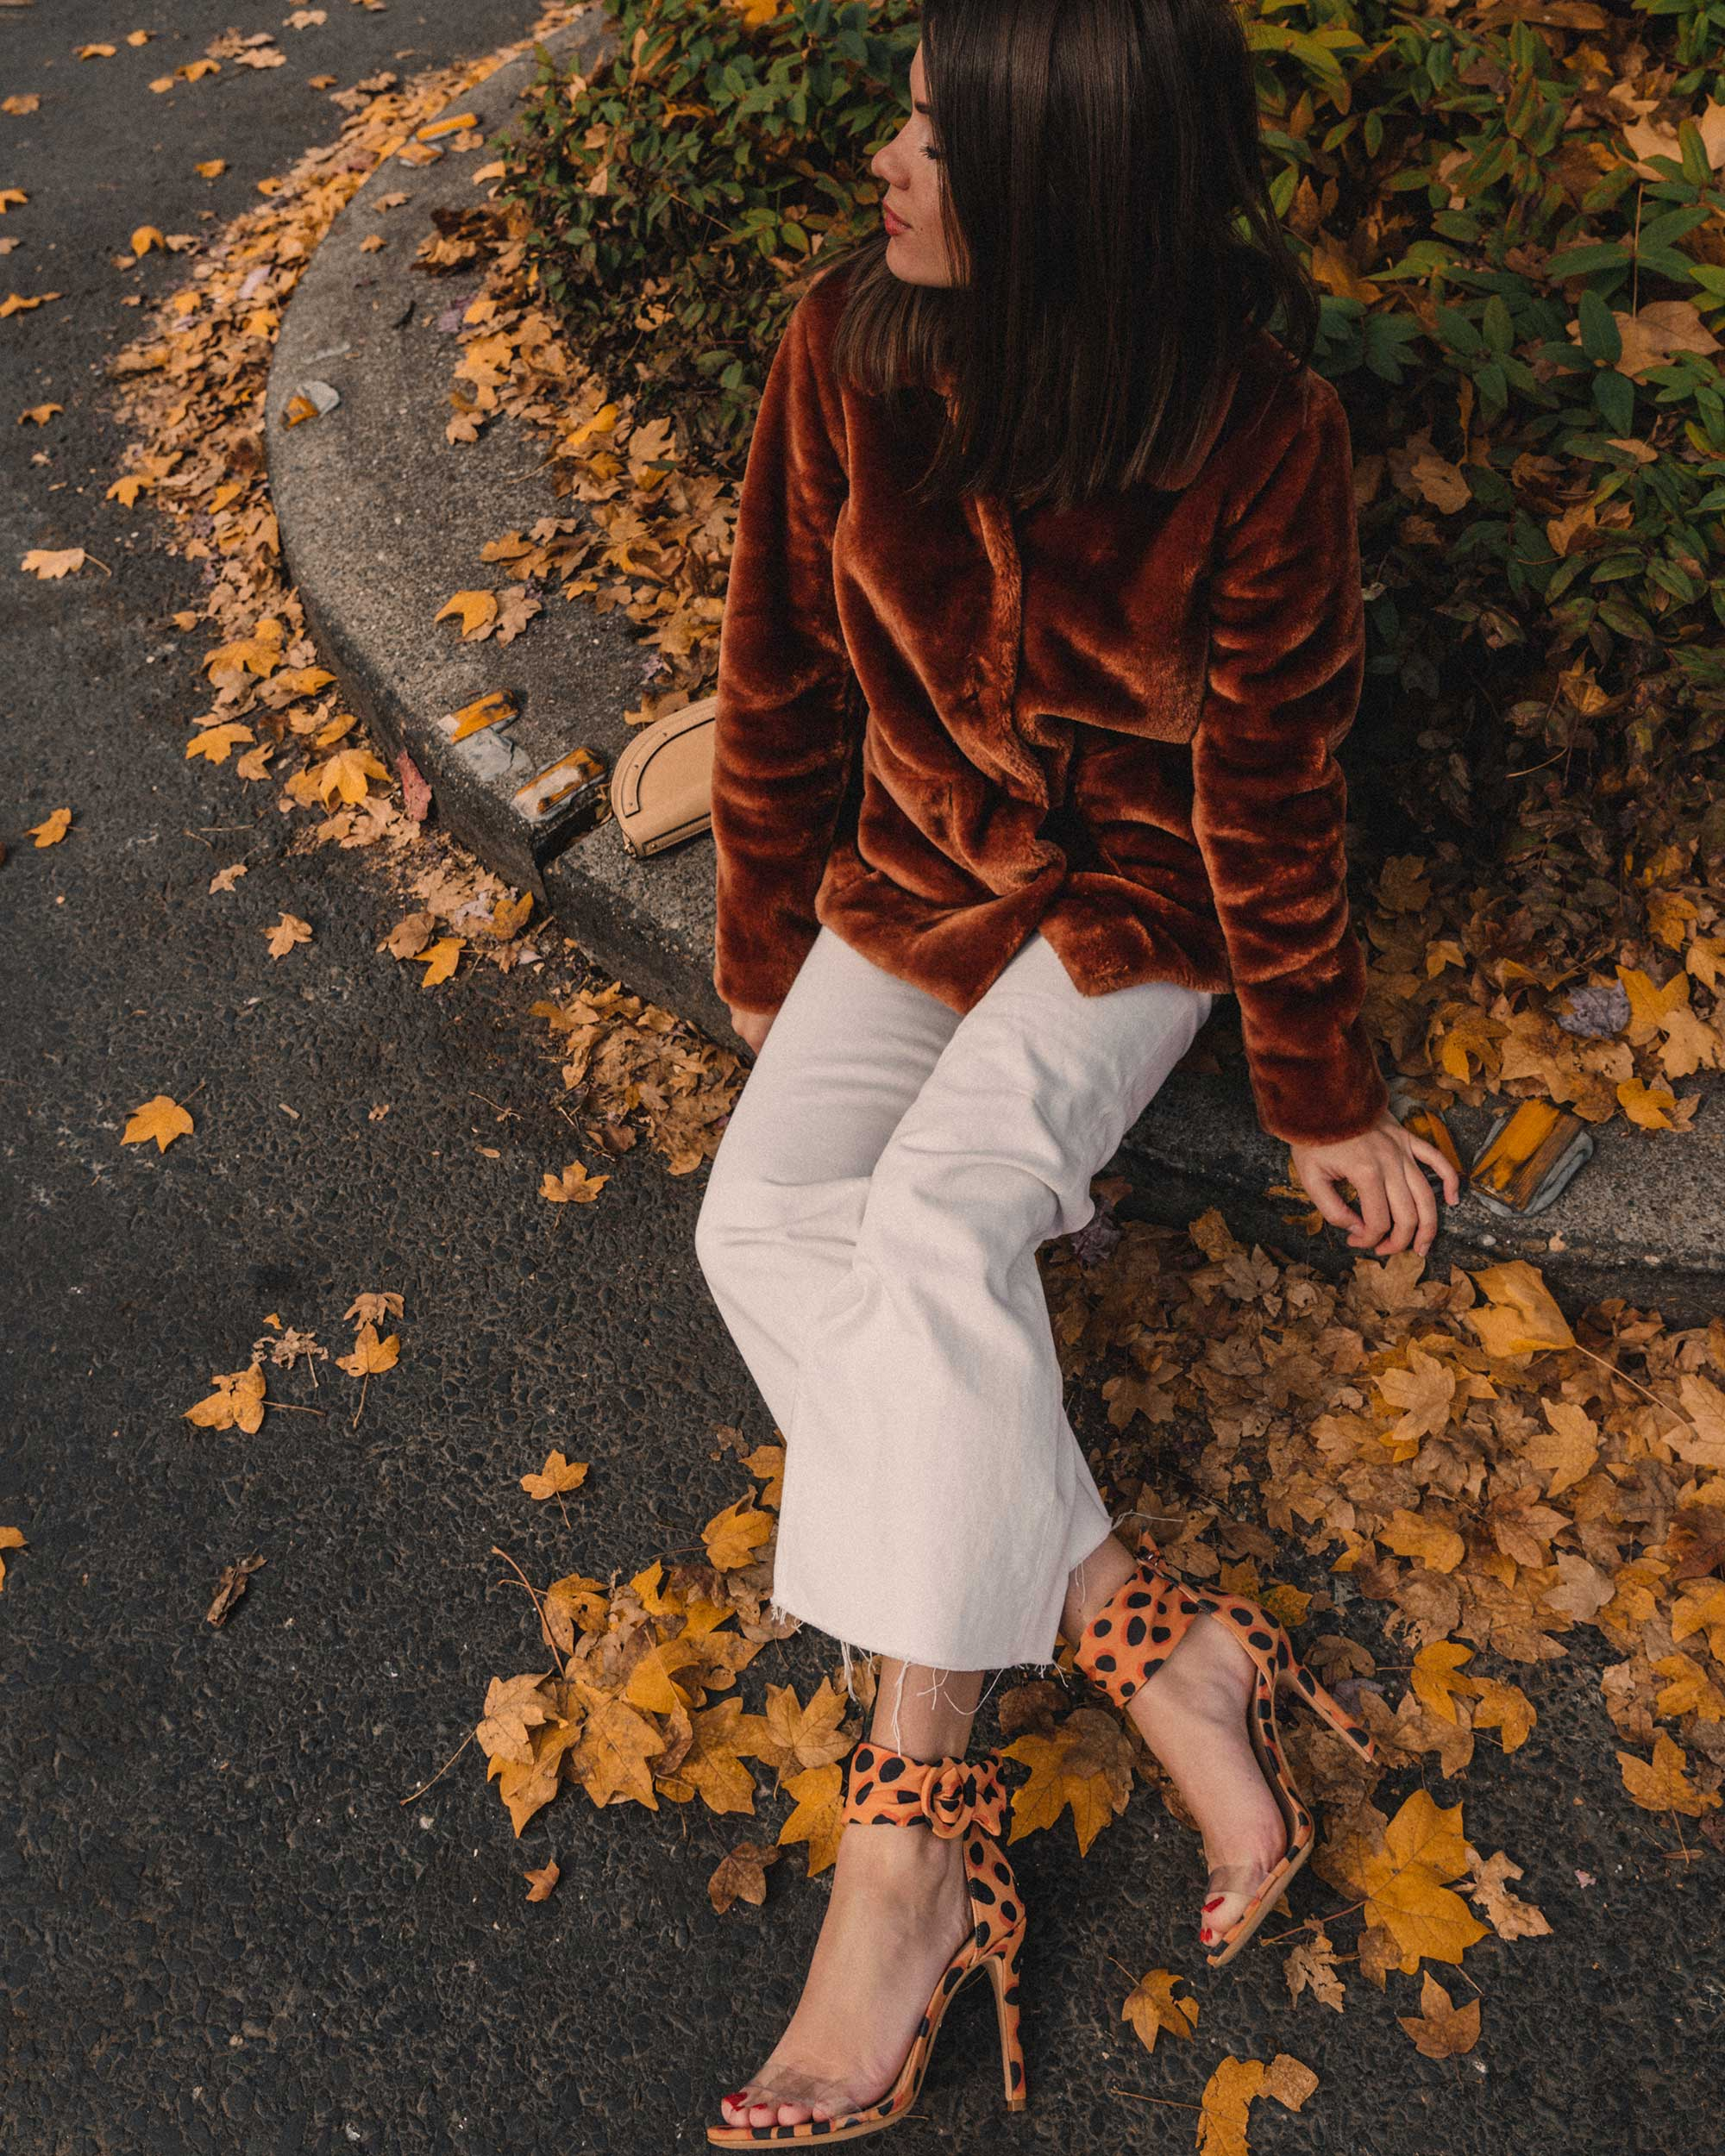 Rebecca Taylor FAUX FUR COAT in rust, fall outfit, Schutz Shoes S-Vall High Heel Wild Dot Leopard Print Sandals2.jpg